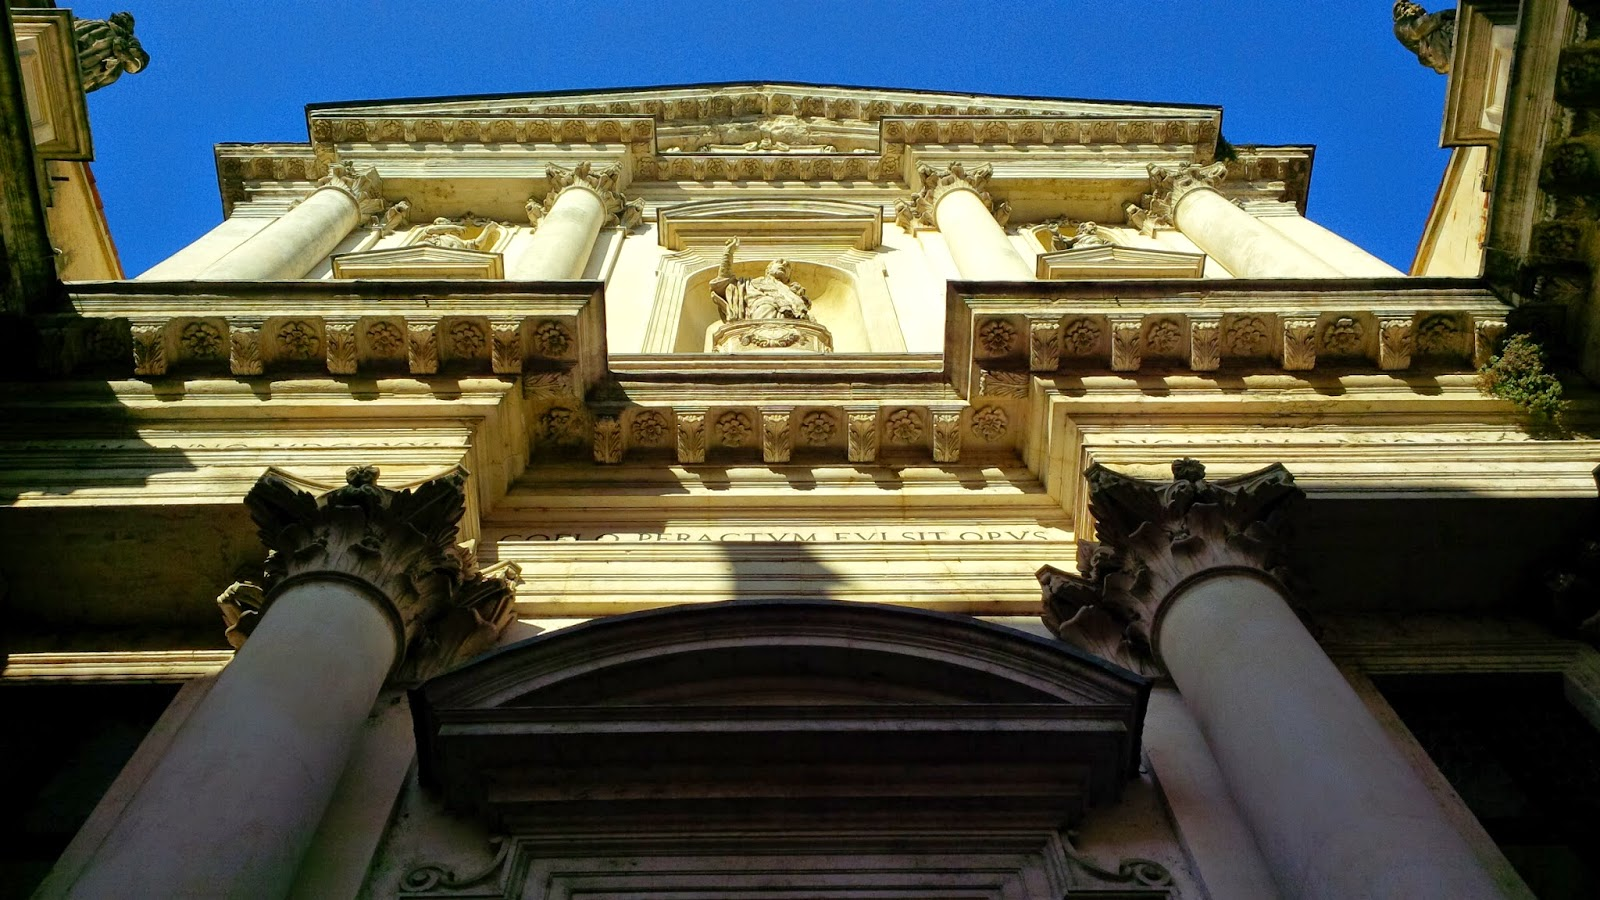 The sun lights up the facade of a church in Vicenza